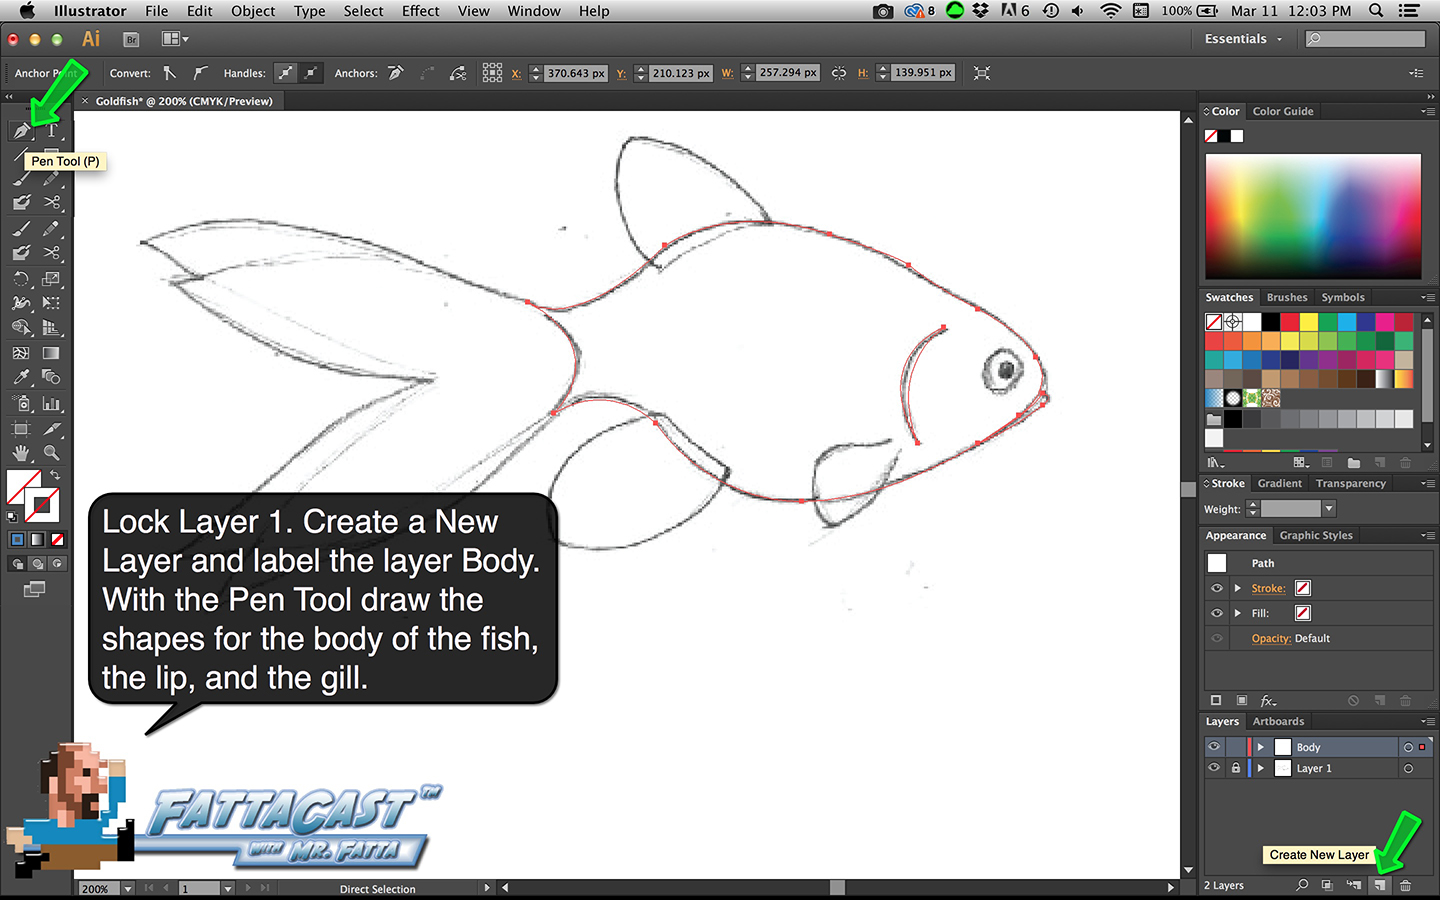 Goldfish Step 3